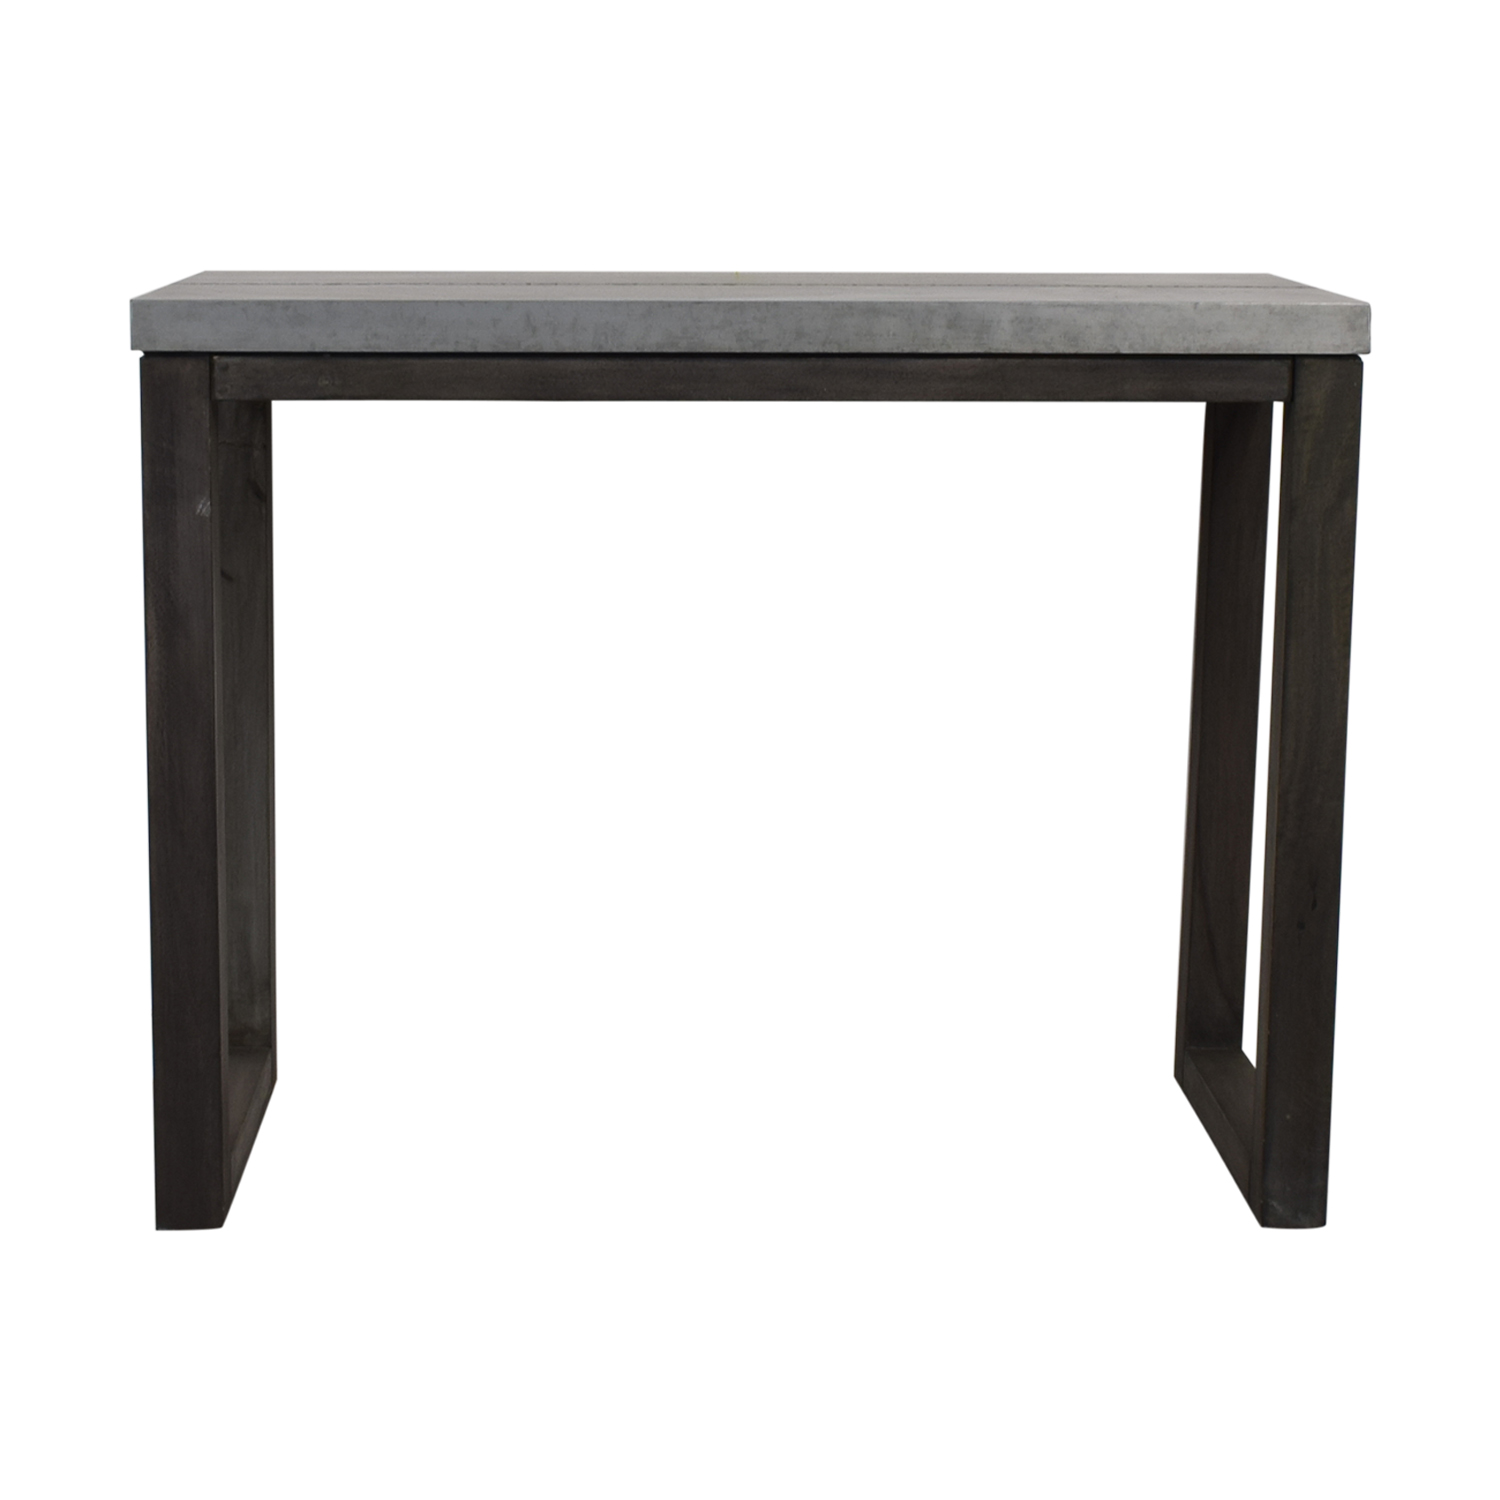 CB2 CB2 Stern Metal Counter Table industrial metal/gray